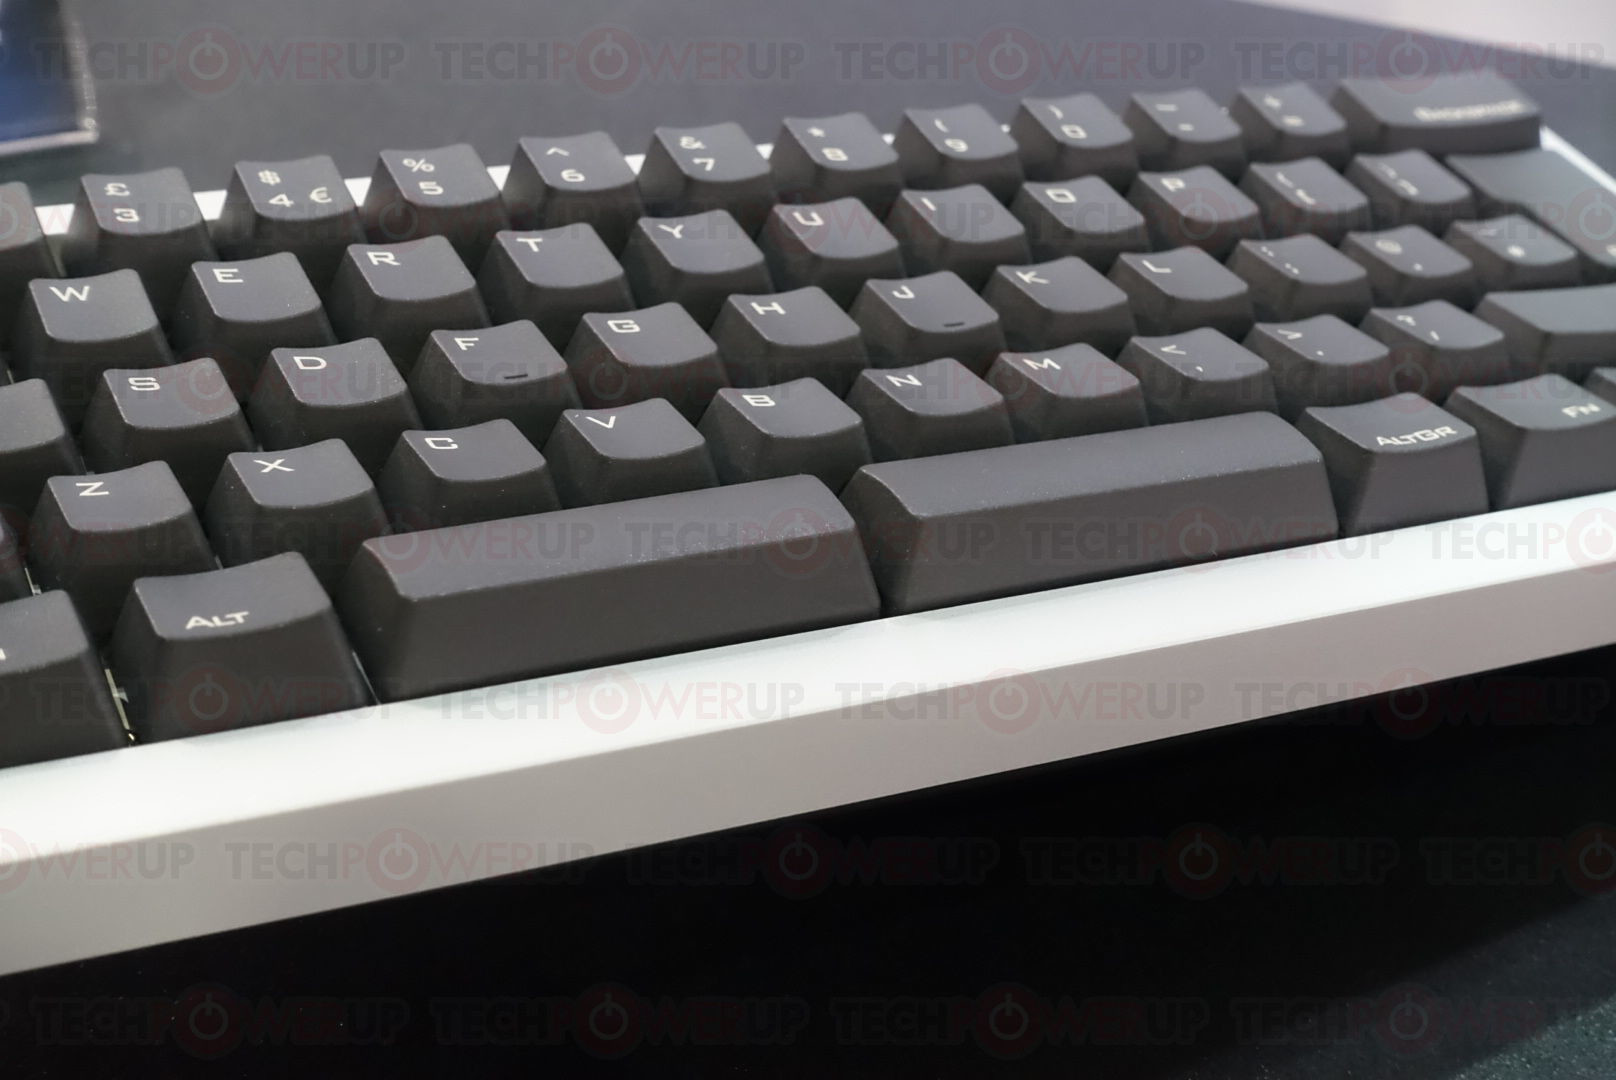 Vortexgear Joins in With More Wireless Mechanical Keyboards